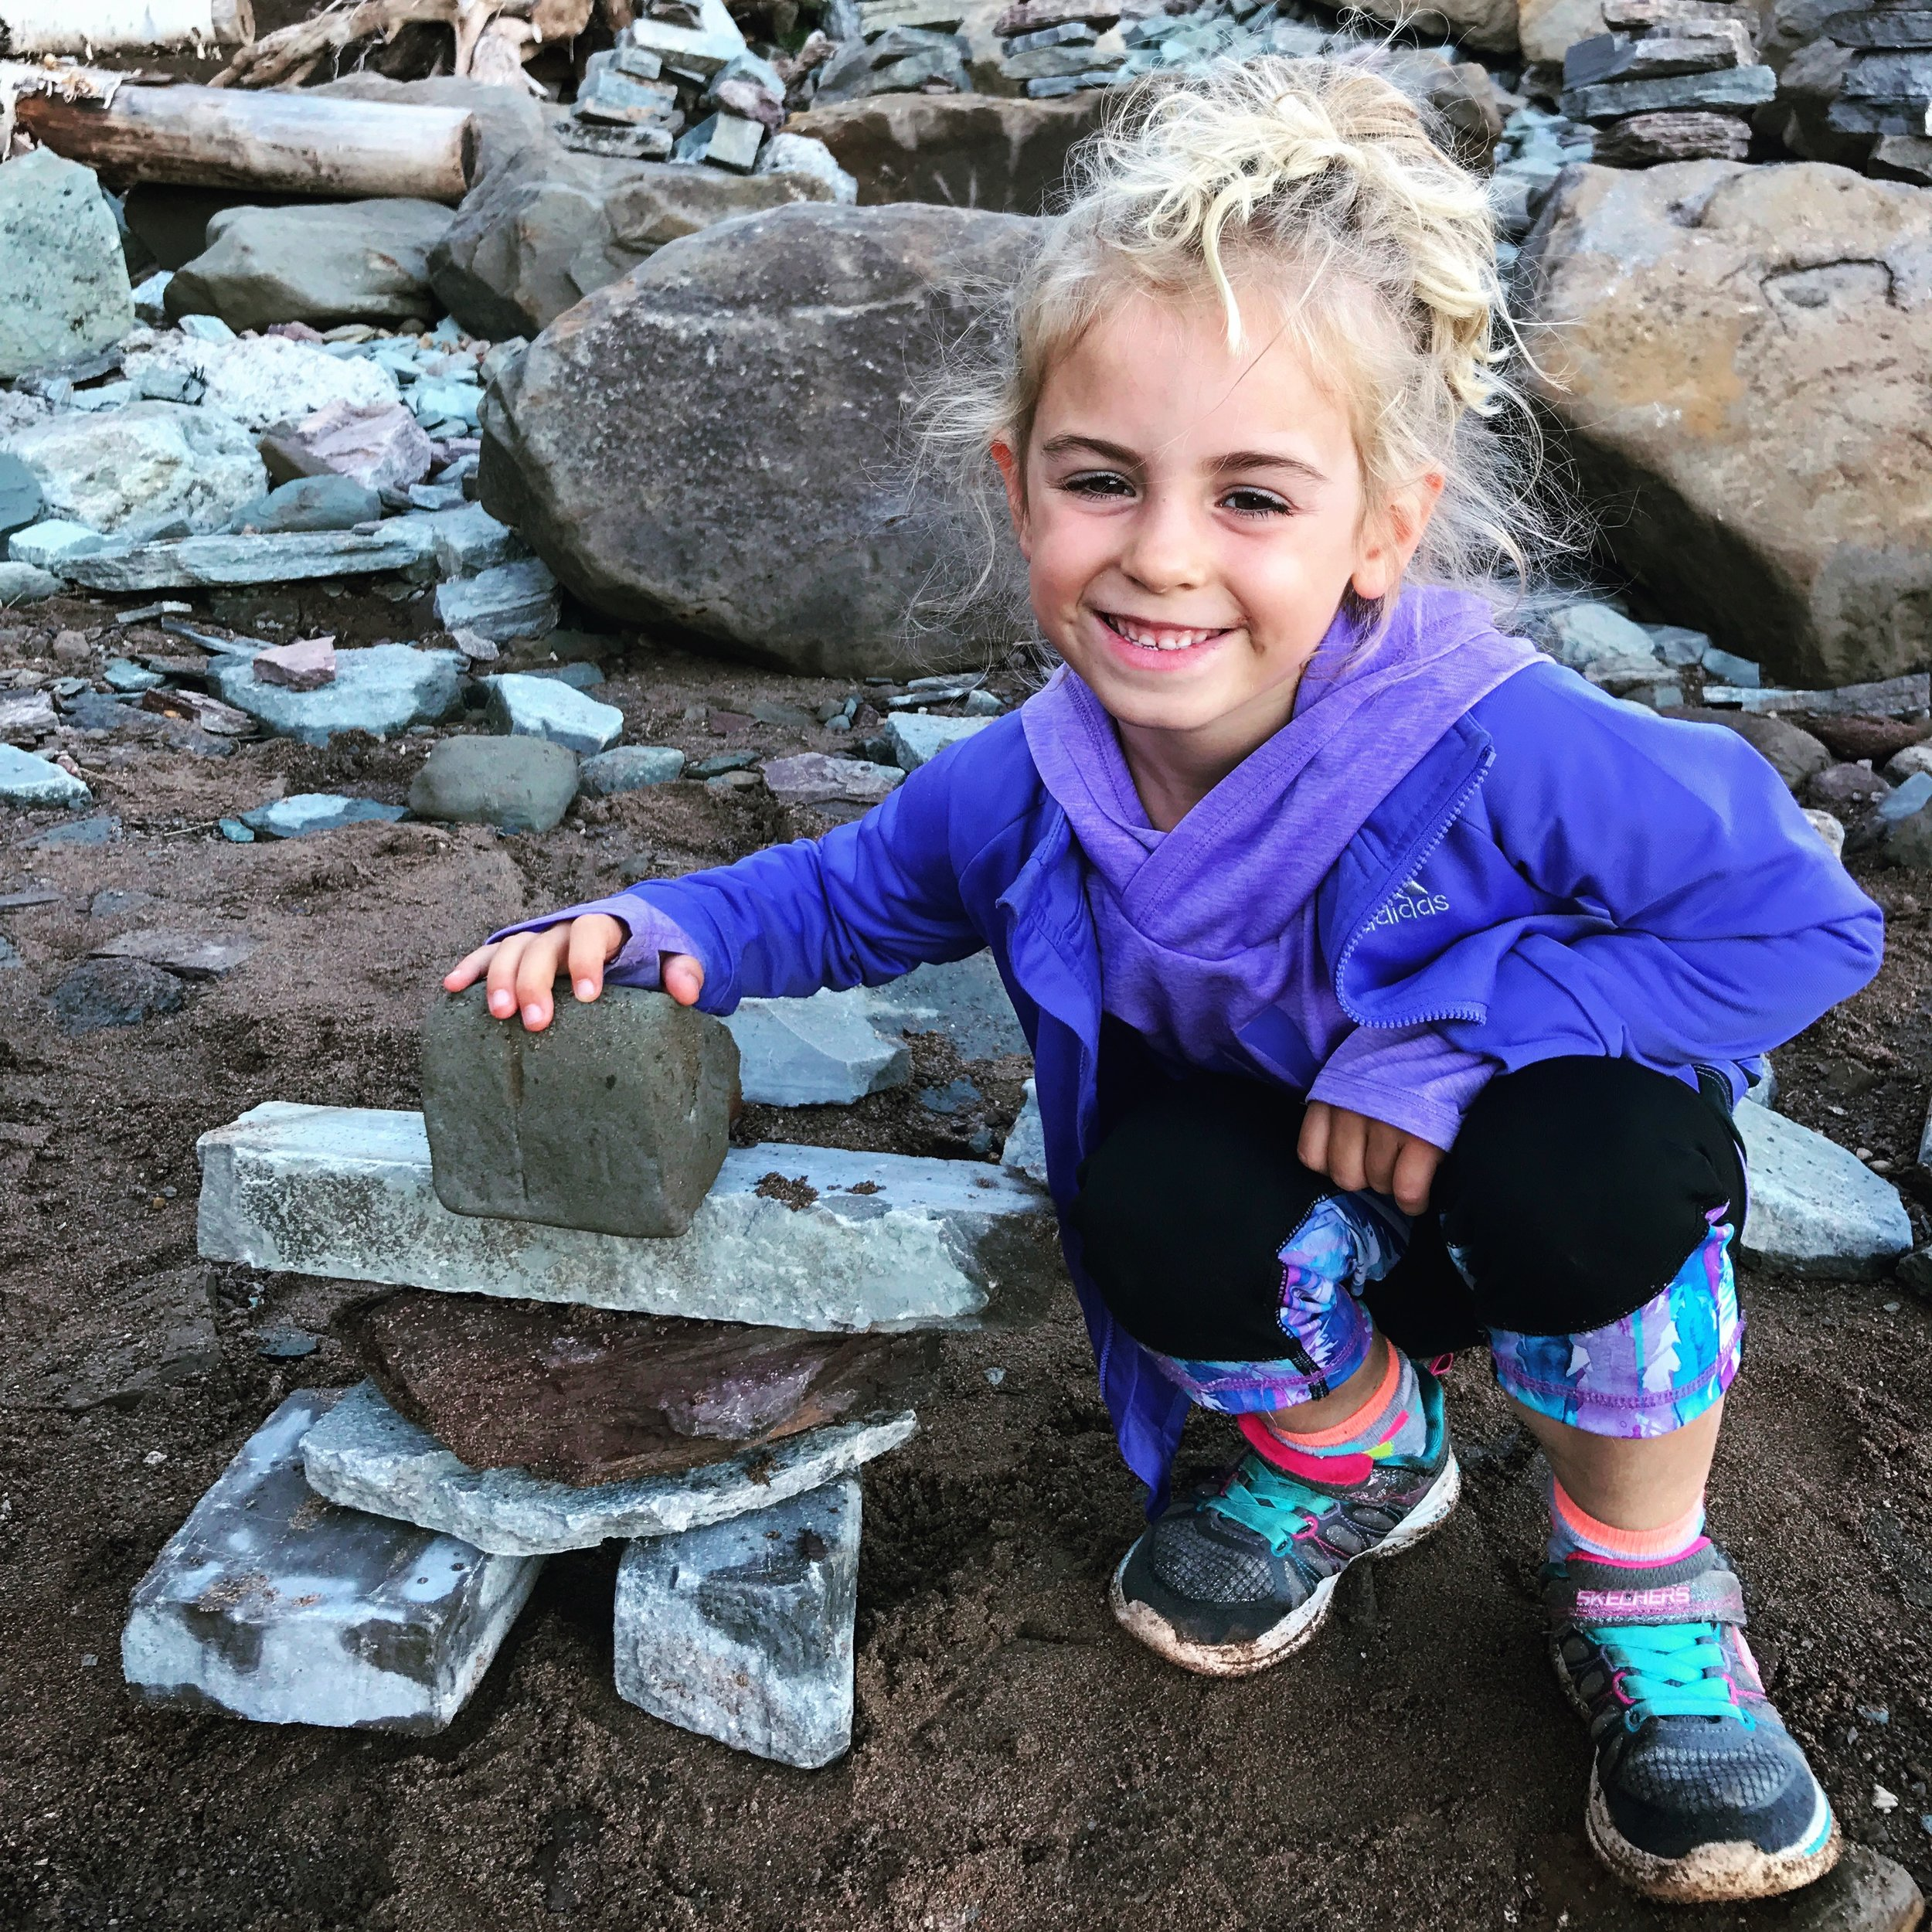 Building Inuksuks on the shores of the Bay of Fundy.